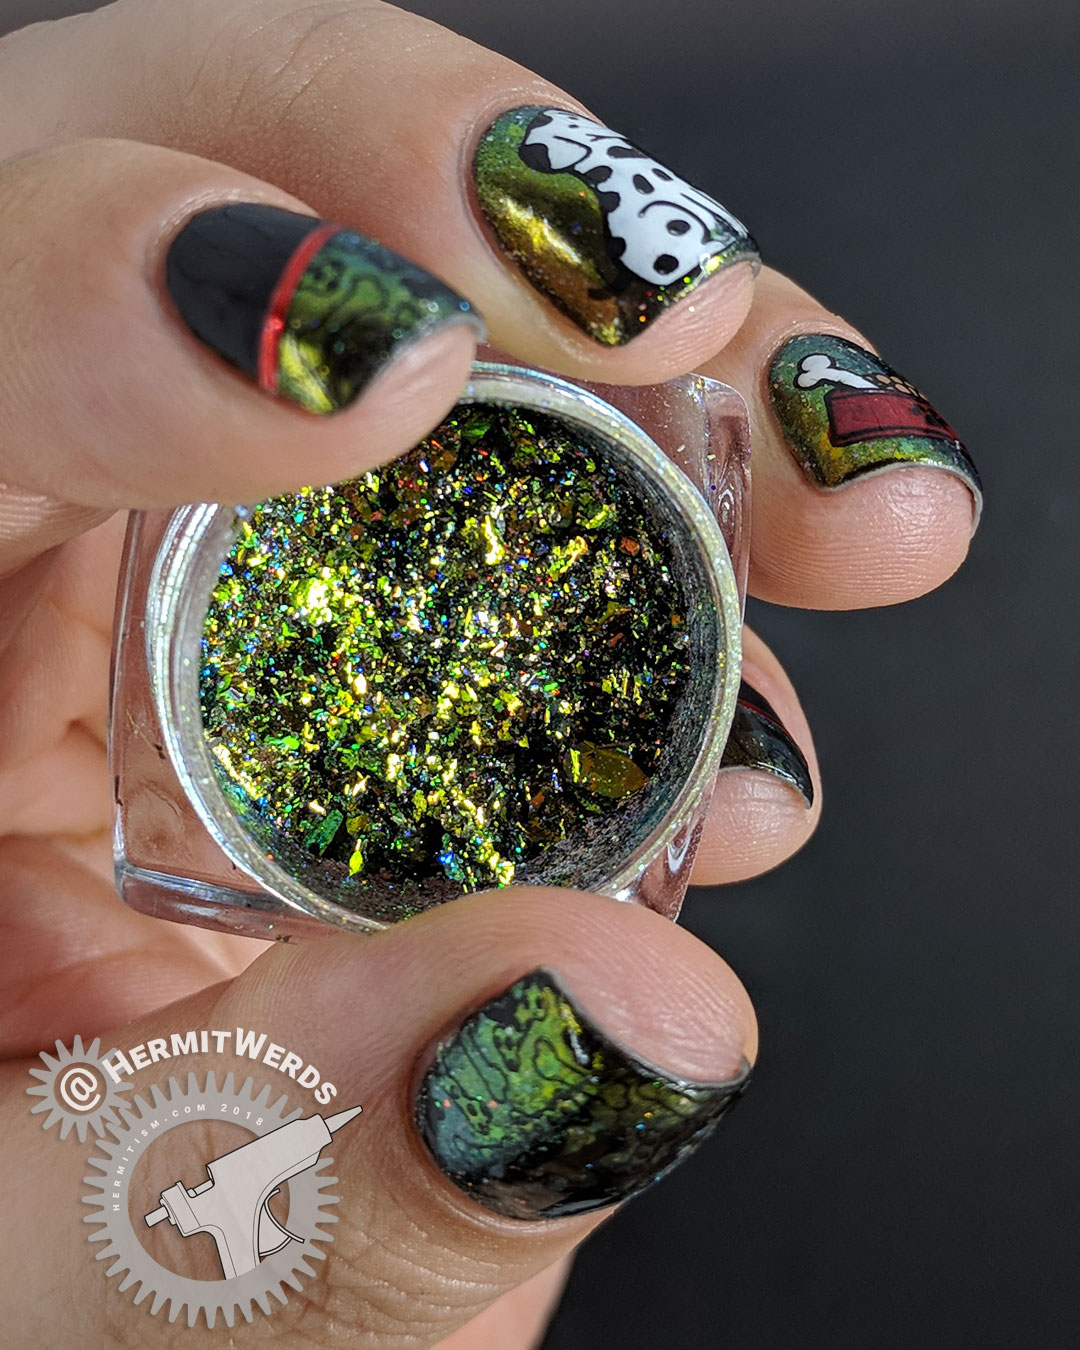 Beauty BigBang Holo Flakie Powder #10 - Hermit Werds - product photo with doggy nail art